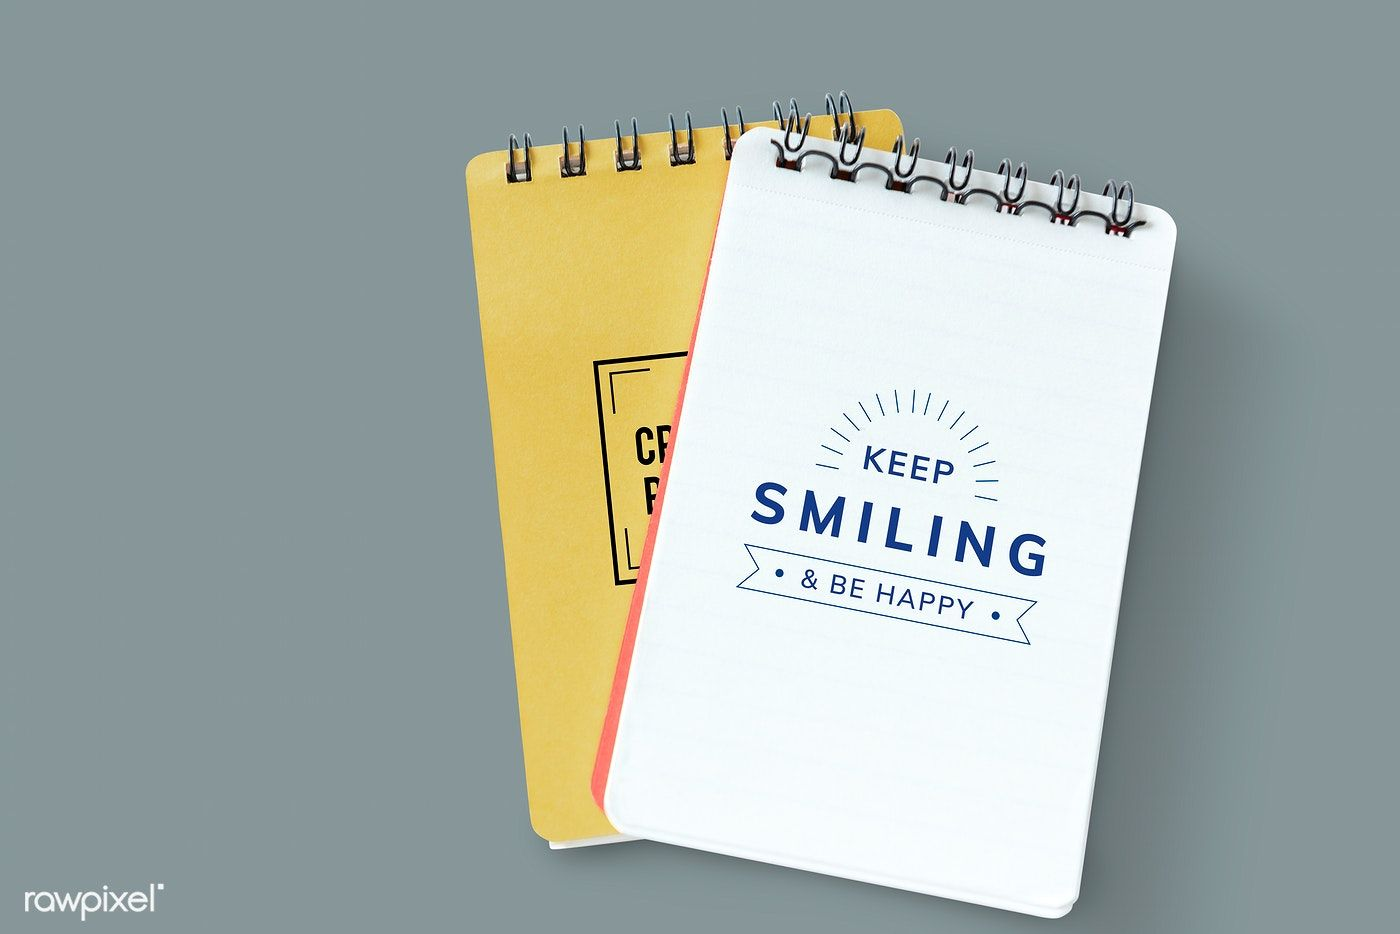 Download Premium Psd Of Badge On A Plain Notebook Mockup 531808 Plain Notebook Design Mockup Free Mockup